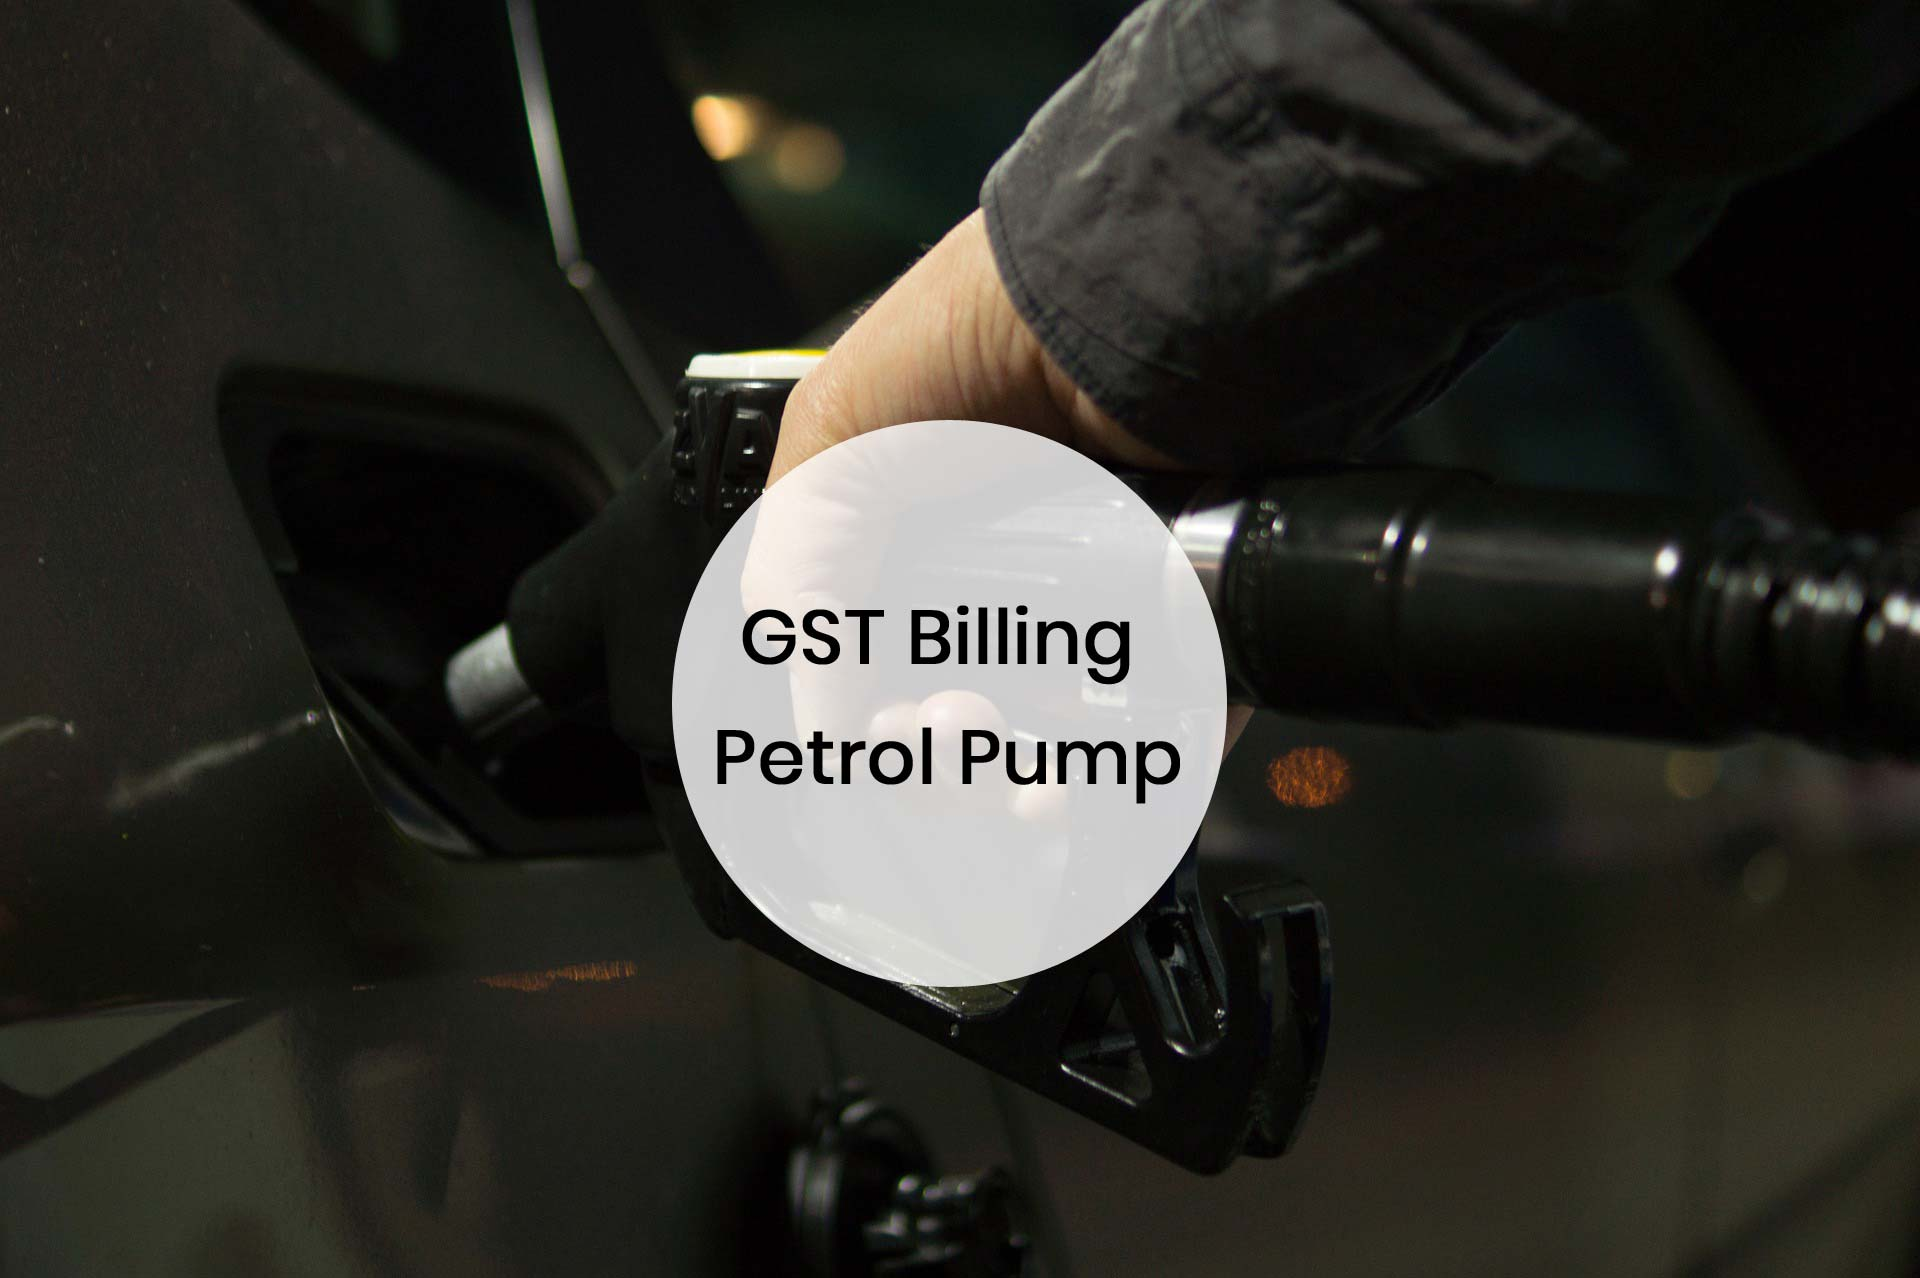 Gst Billing Petrol Pump at Versatile